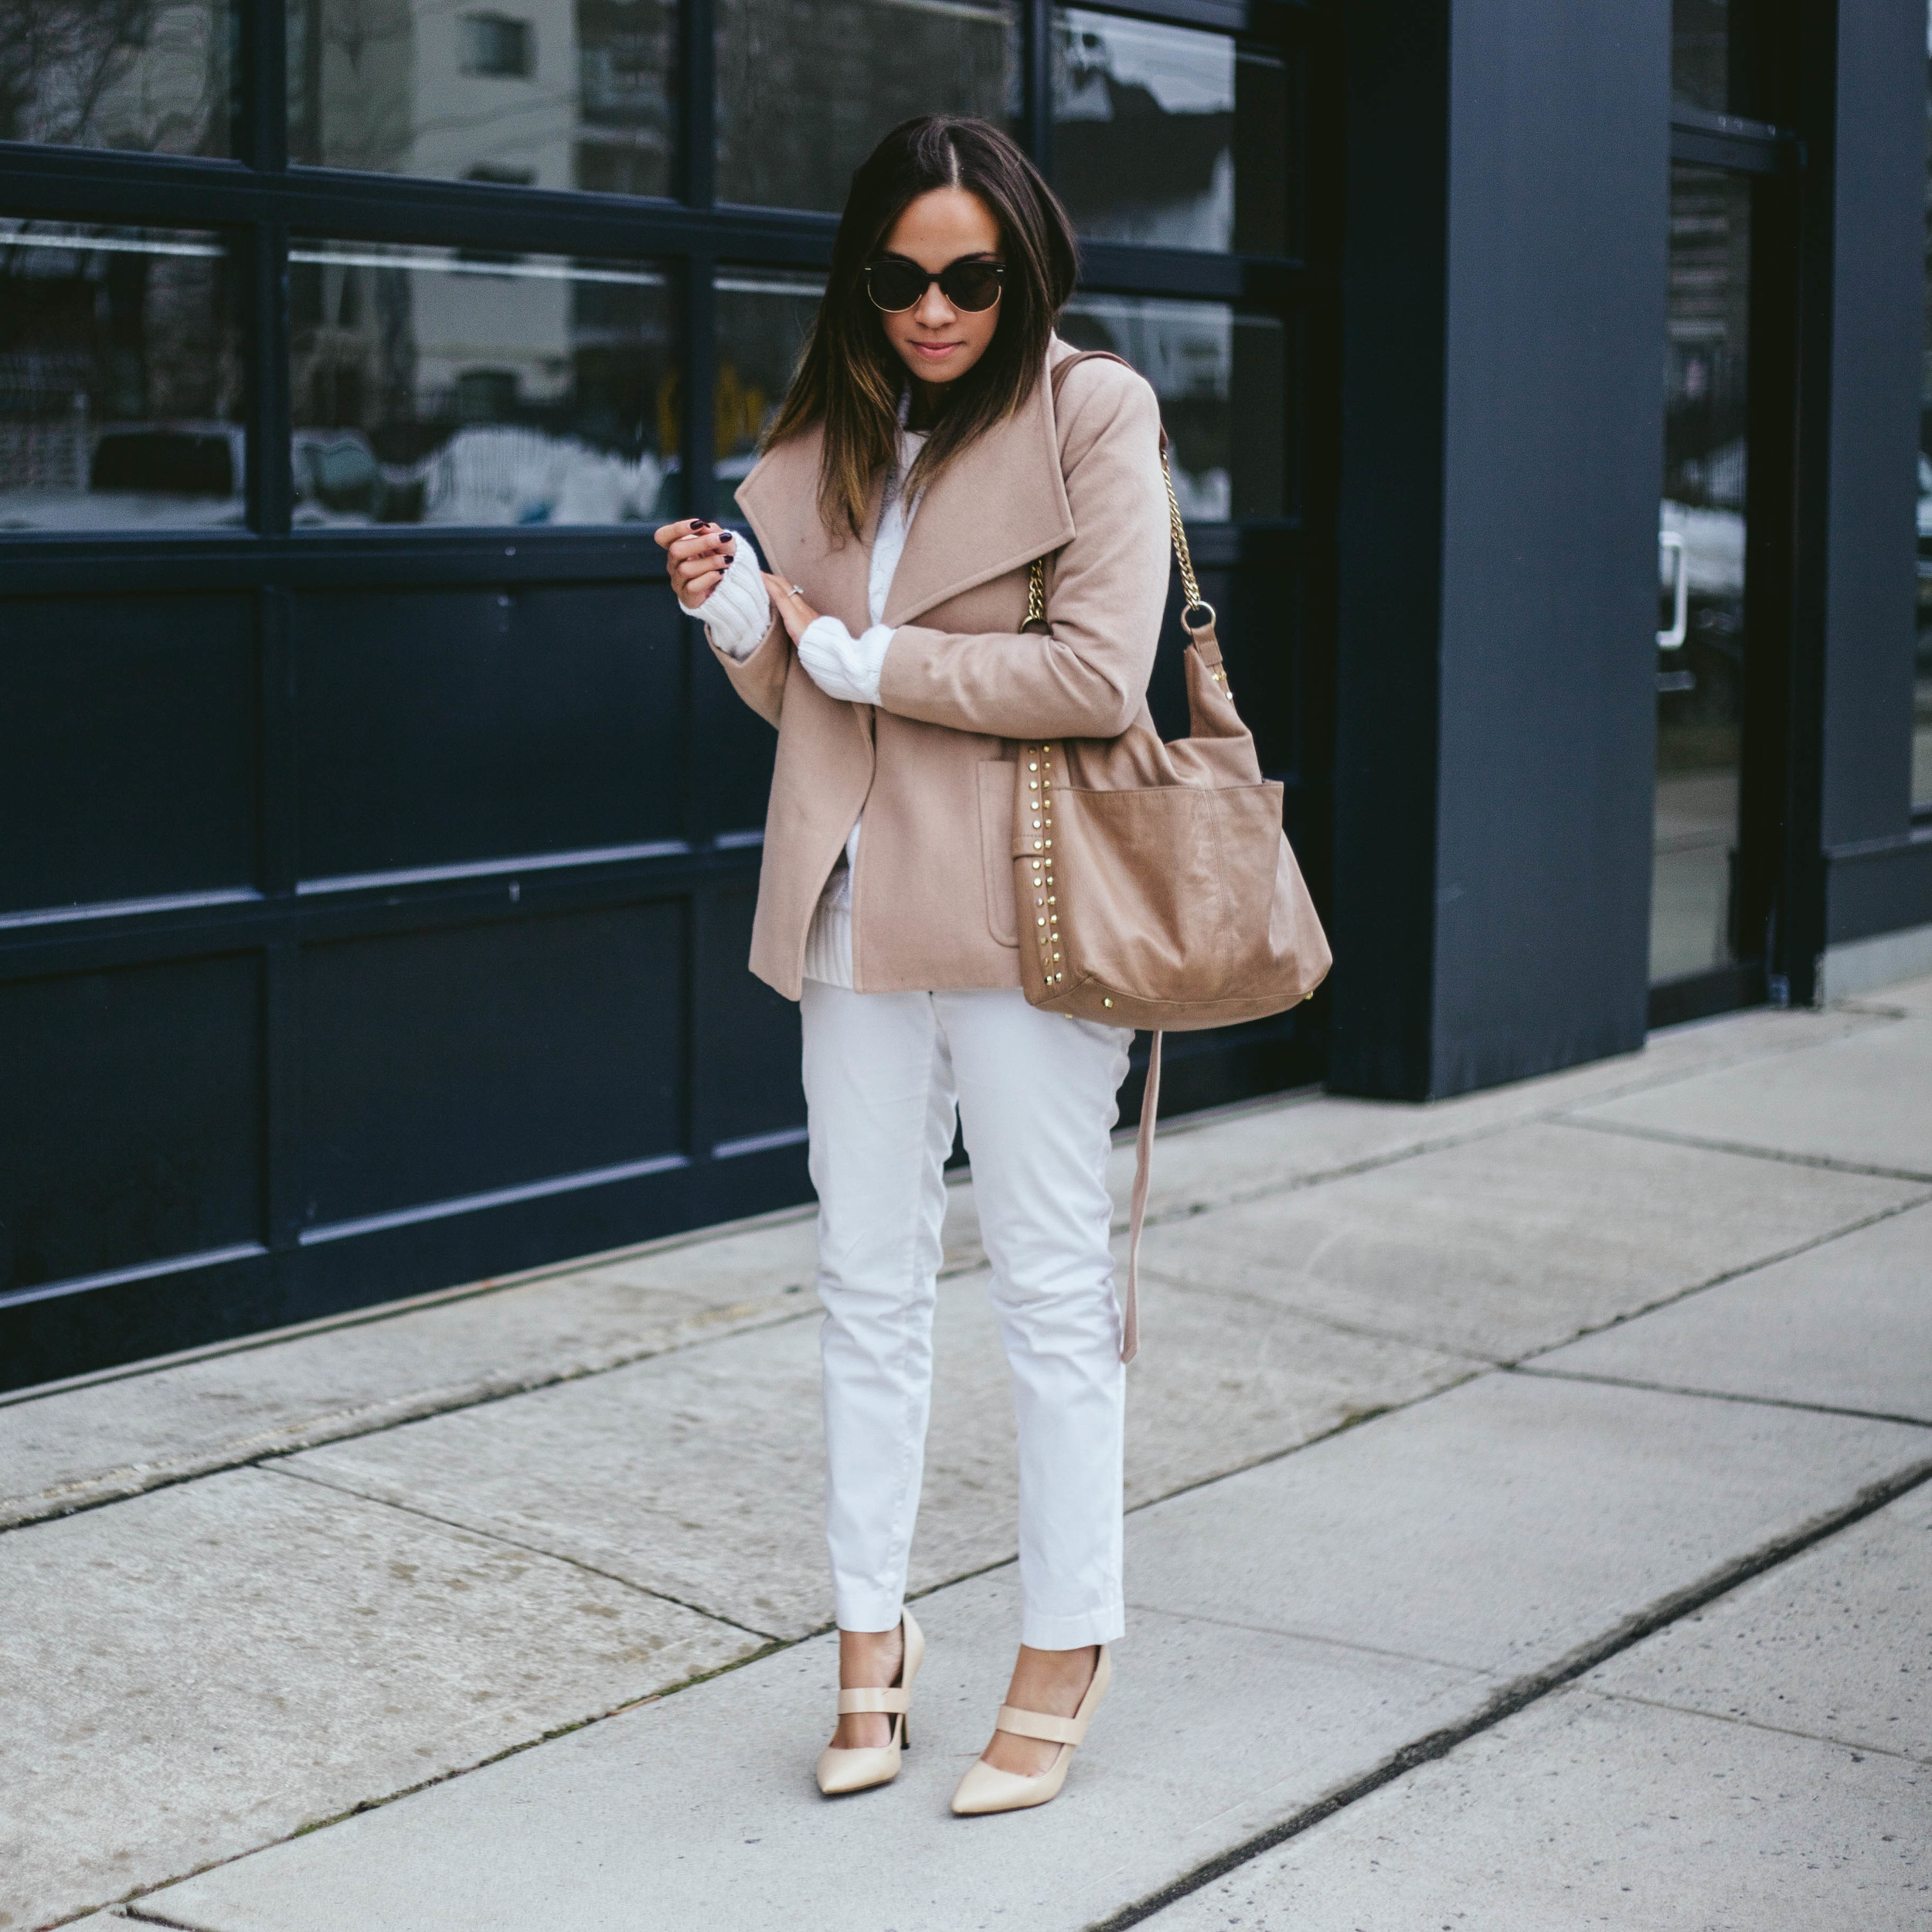 Winter White Outfit 2.jpg